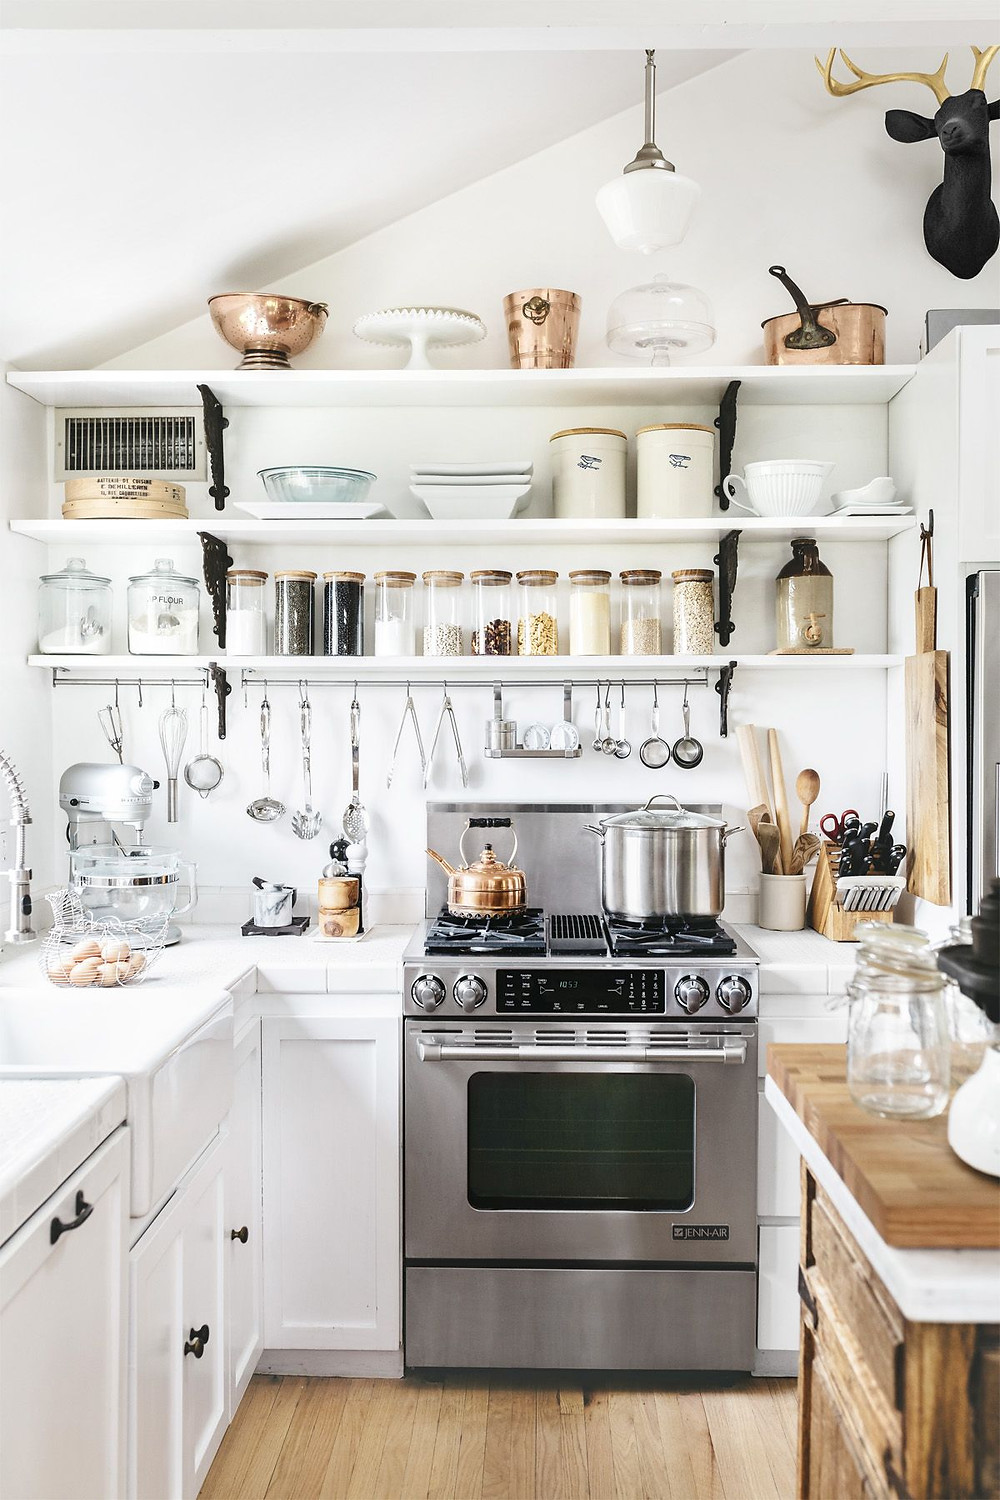 all white kitchen farmhouse chic with open shelving and copper pots